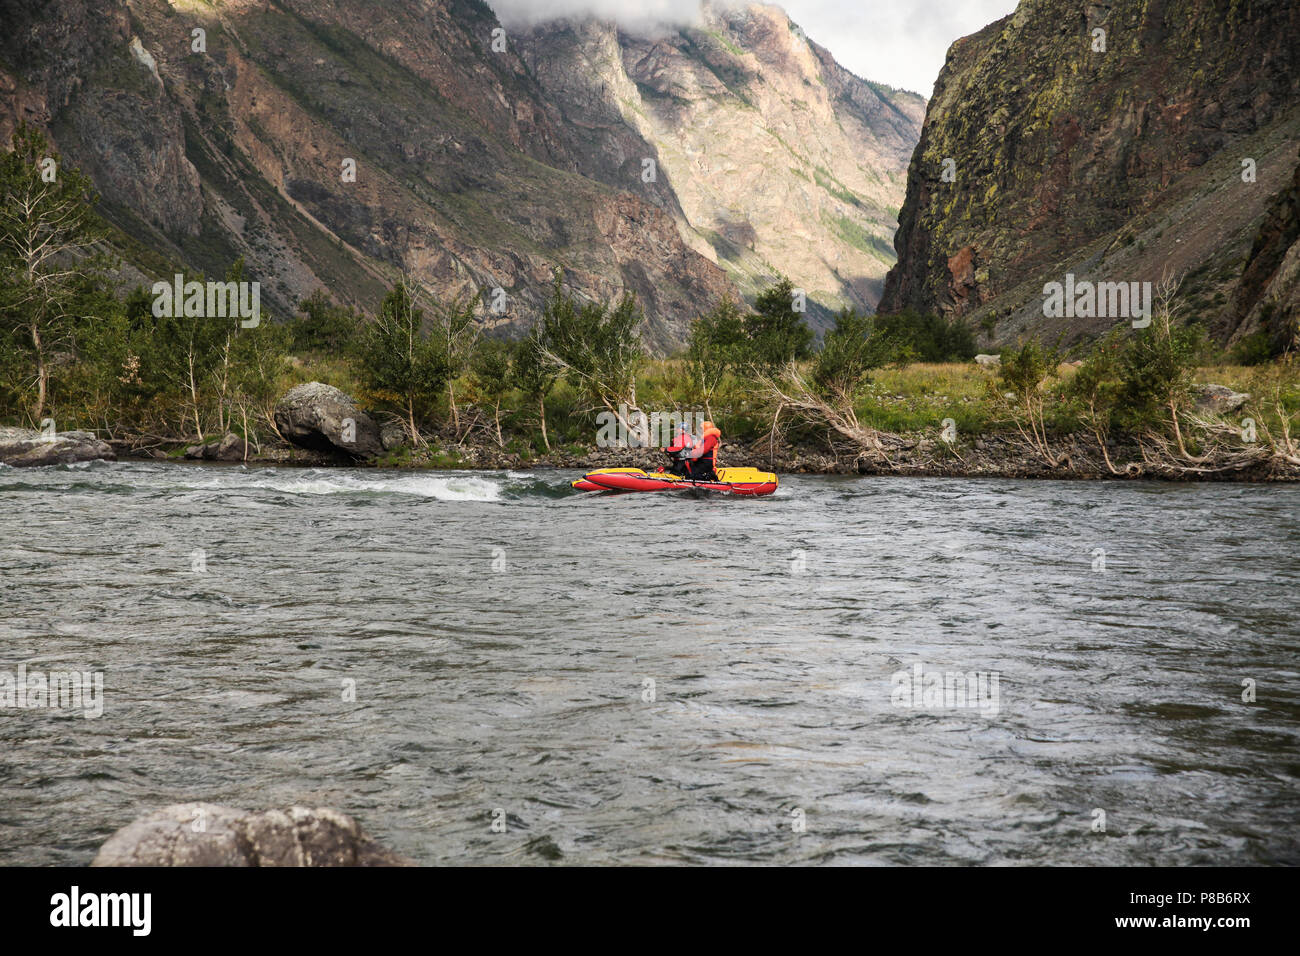 side view of people on kayaks rafting on mountain river and beautiful landscape, Altai, Russia - Stock Image